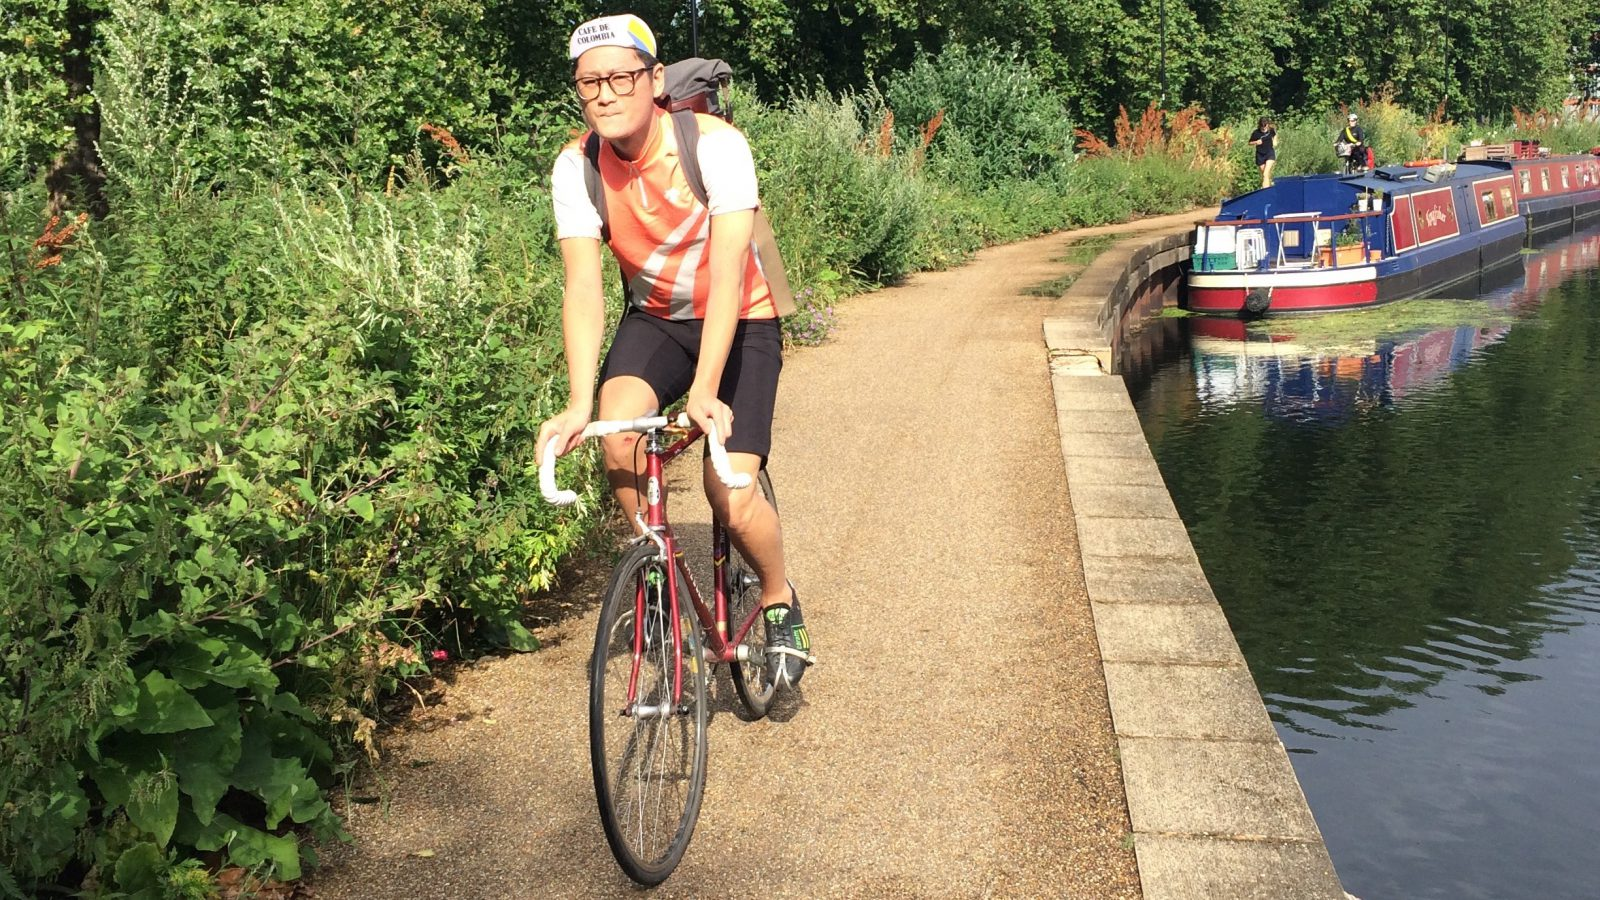 A cyclist on Regents Canal